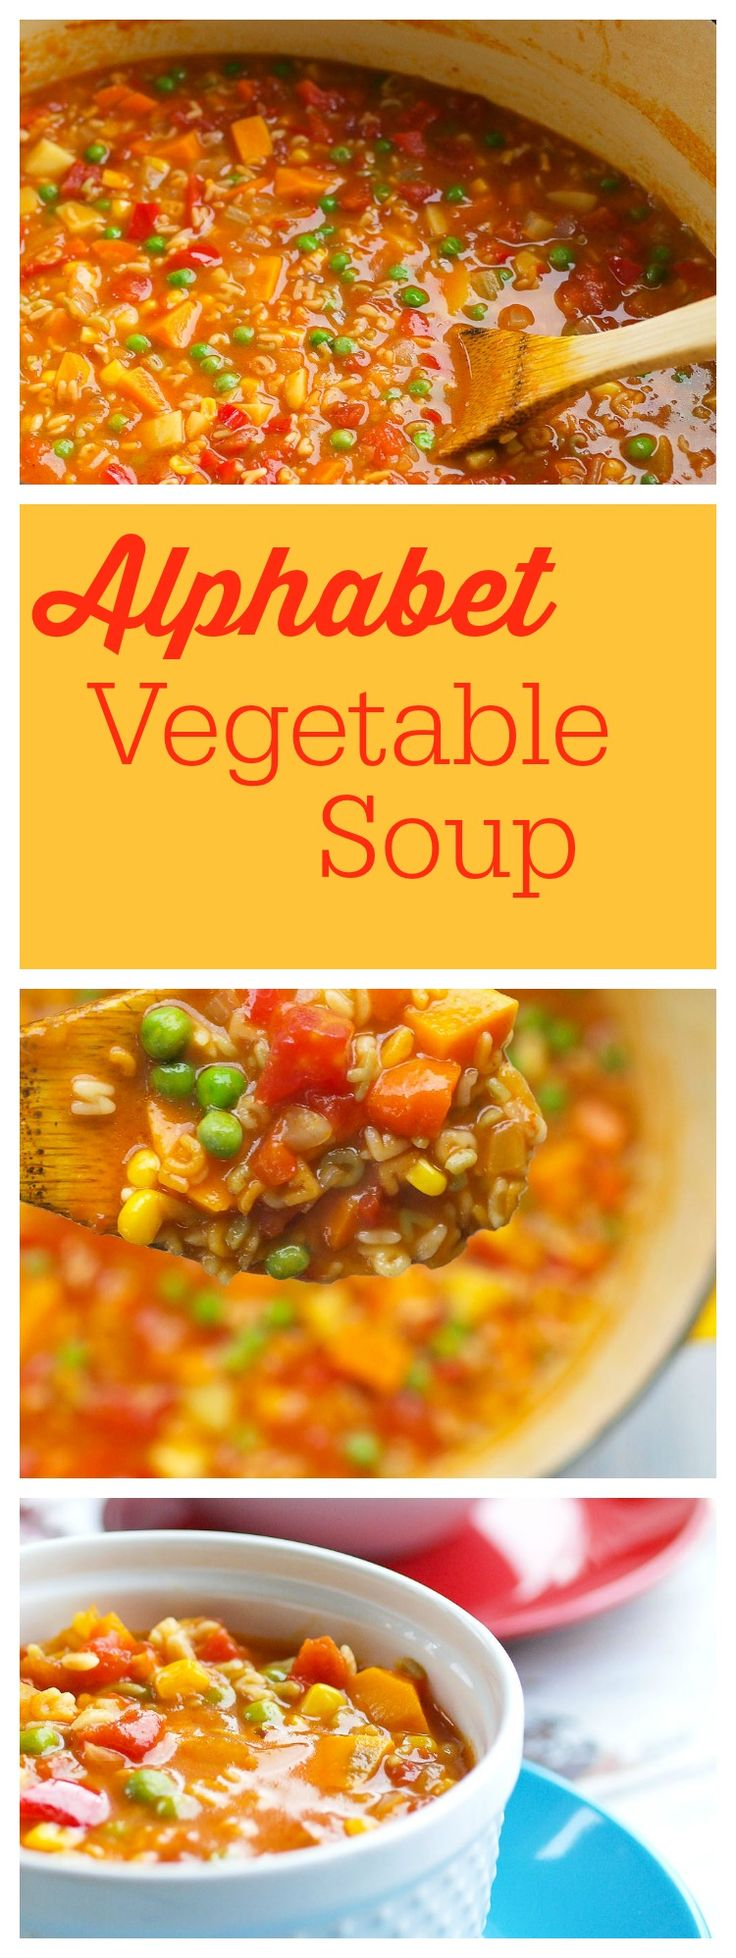 Baby it's cold outside--make soup! This homemade Alphabet Vegetable Soup is way better and healthier than Campbell's!  AND you can have this ready in about 40 minutes! Use whatever vegetables and whole grain pasta shape you have on hand.